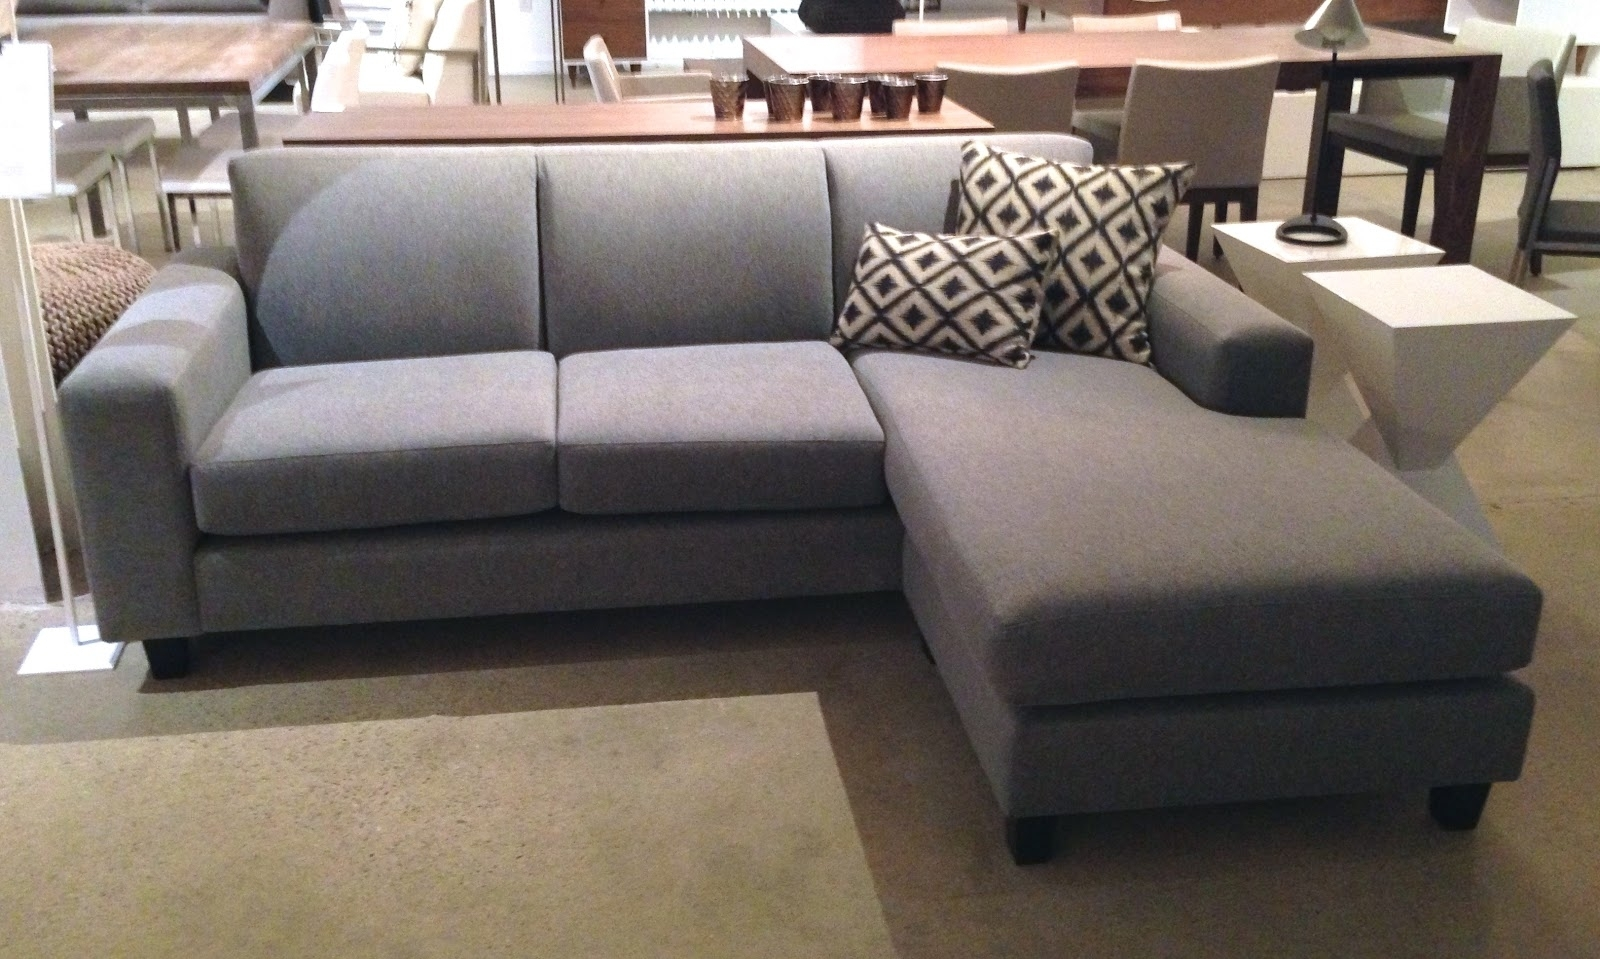 Amazing Condo Sectional Sofa Toronto – Mediasupload Regarding Sectional Sofas For Condos (View 5 of 10)